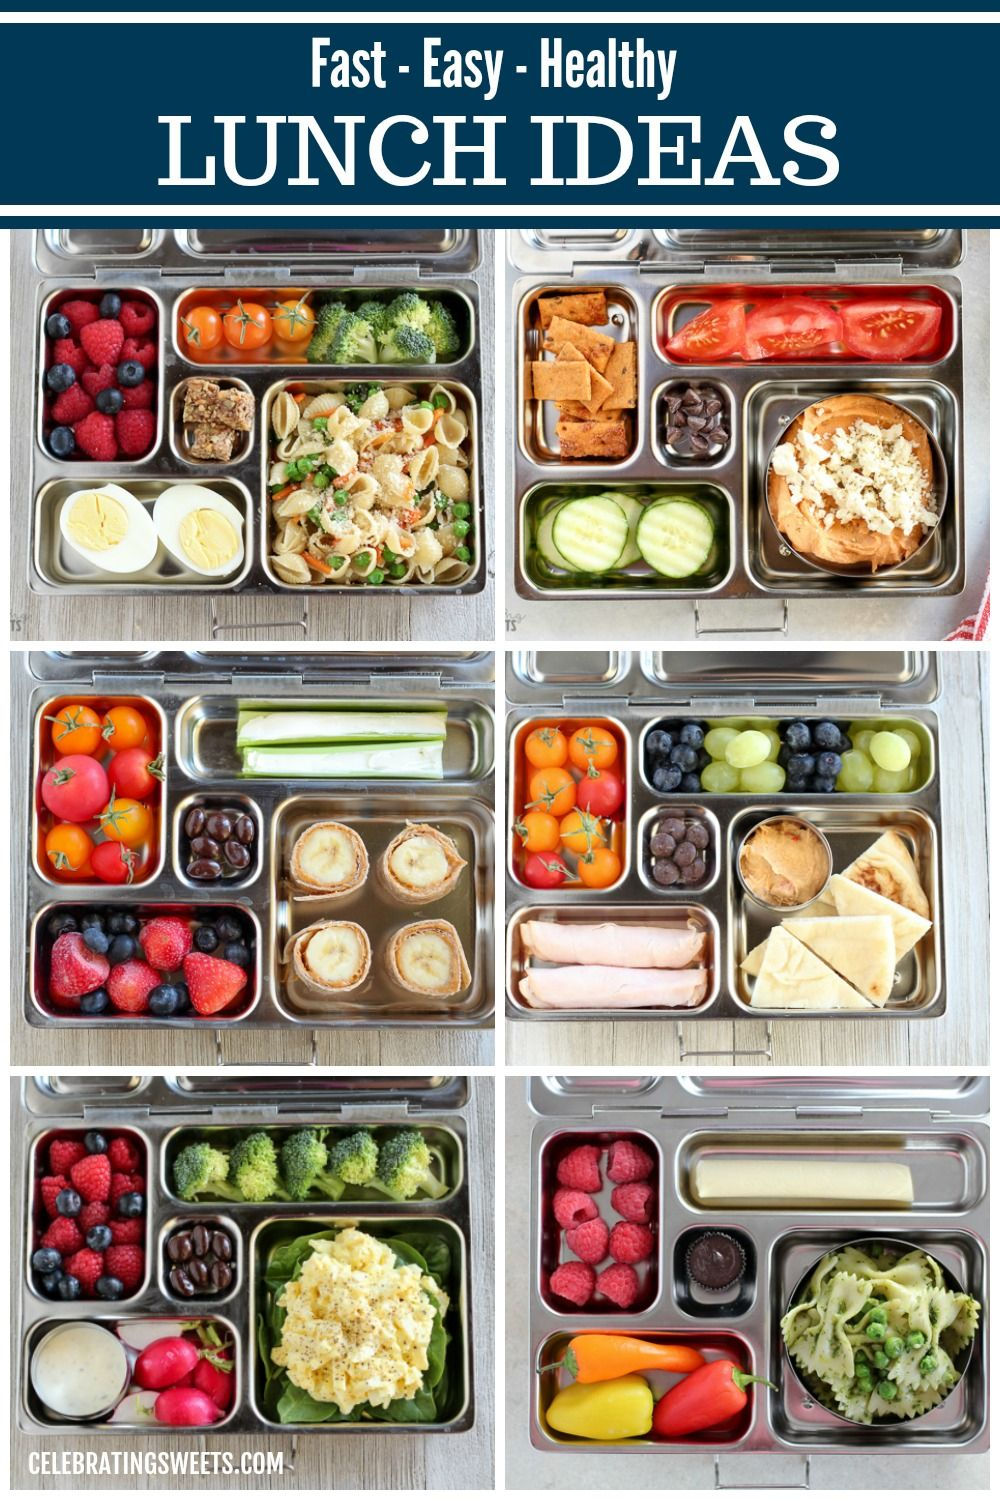 New Healthy Meal Ideas For Lunch At Work